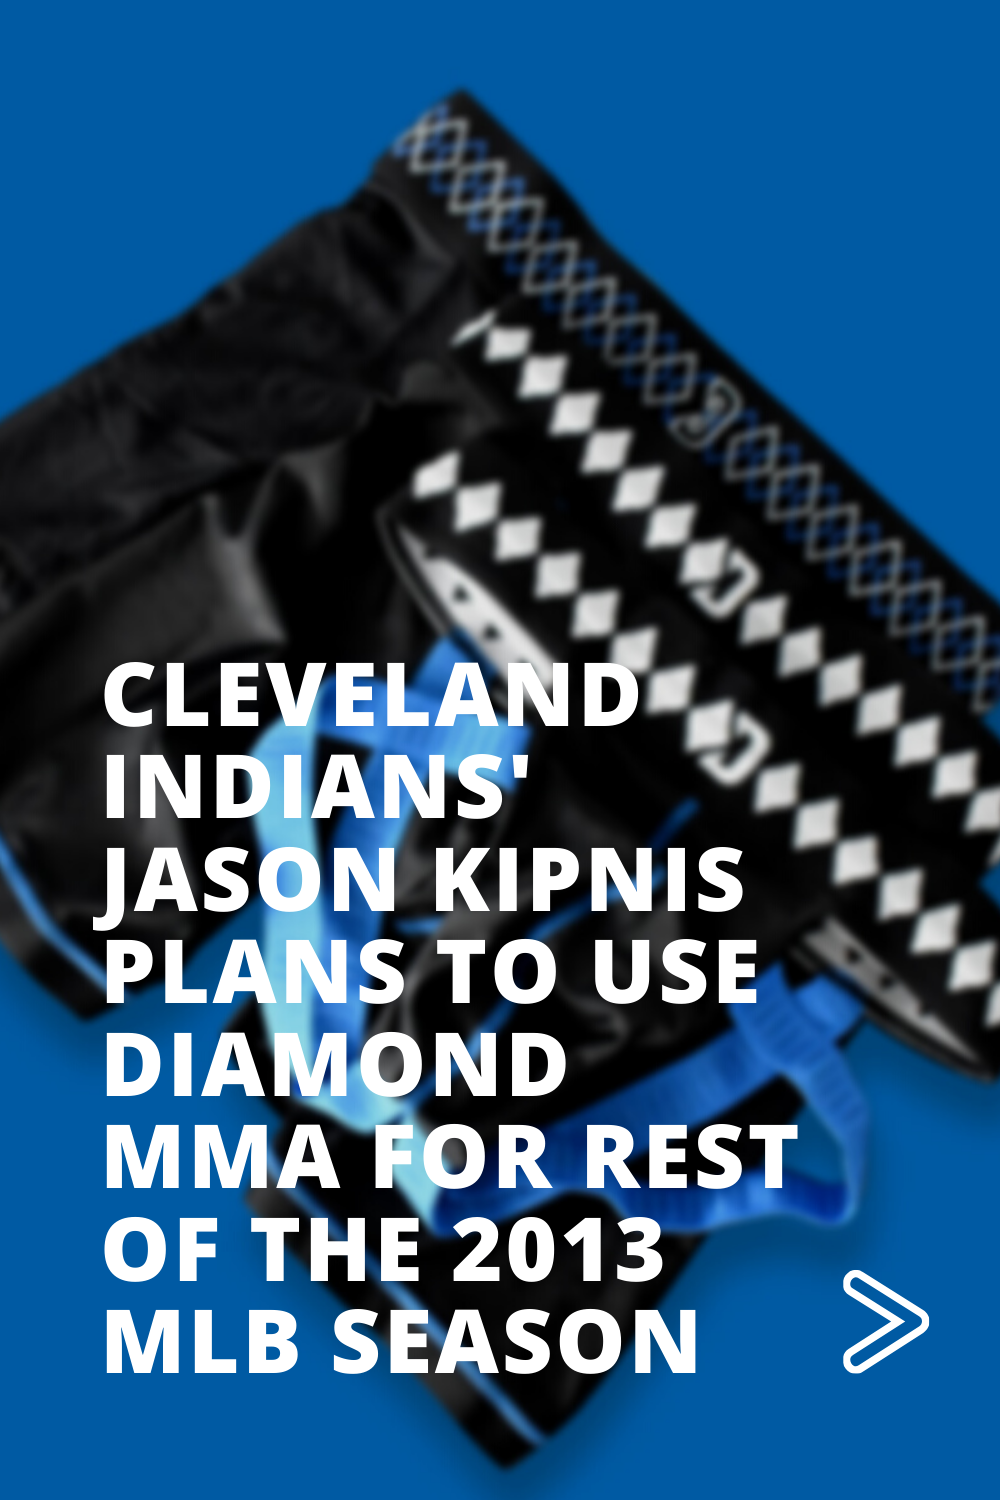 Cleveland Indians' Jason Kipnis Plans to Use Diamond for Rest 2013 MLB Season